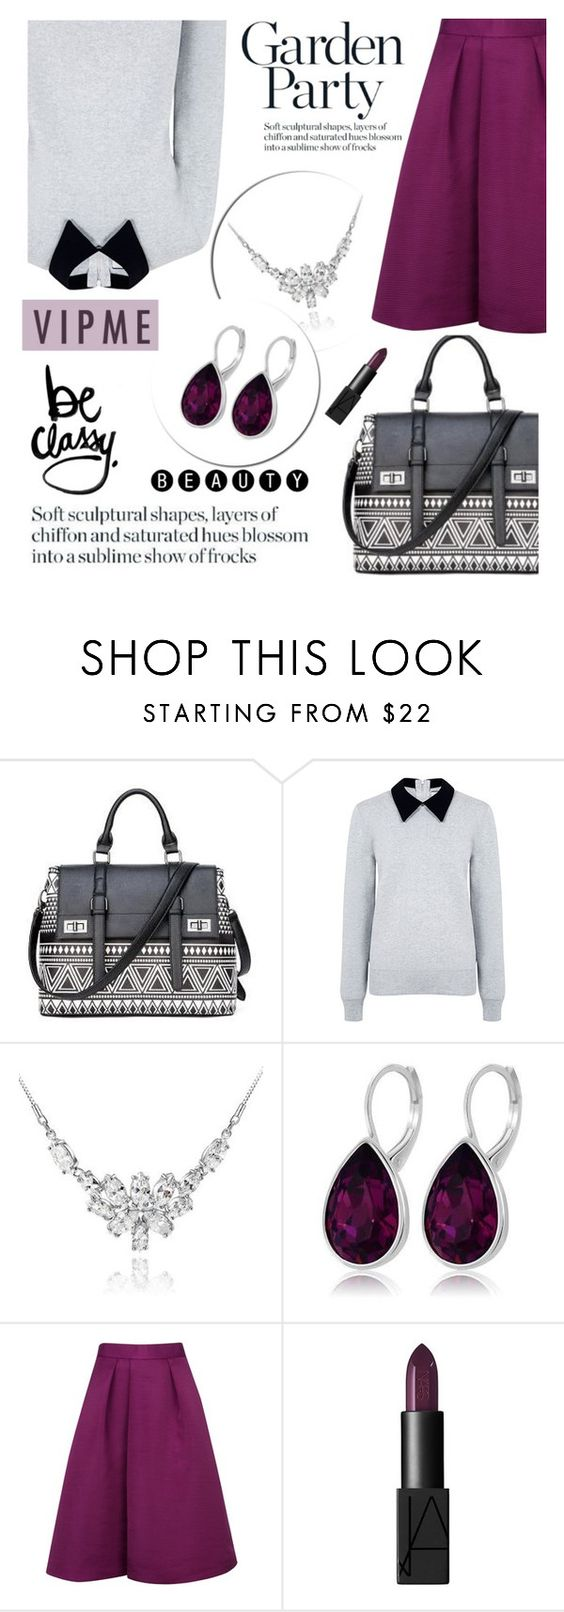 """""""VIPME #2"""" by mihreta-m ❤ liked on Polyvore featuring Edit, Ted Baker, NARS Cosmetics, women's clothing, women, female, woman, misses and juniors"""